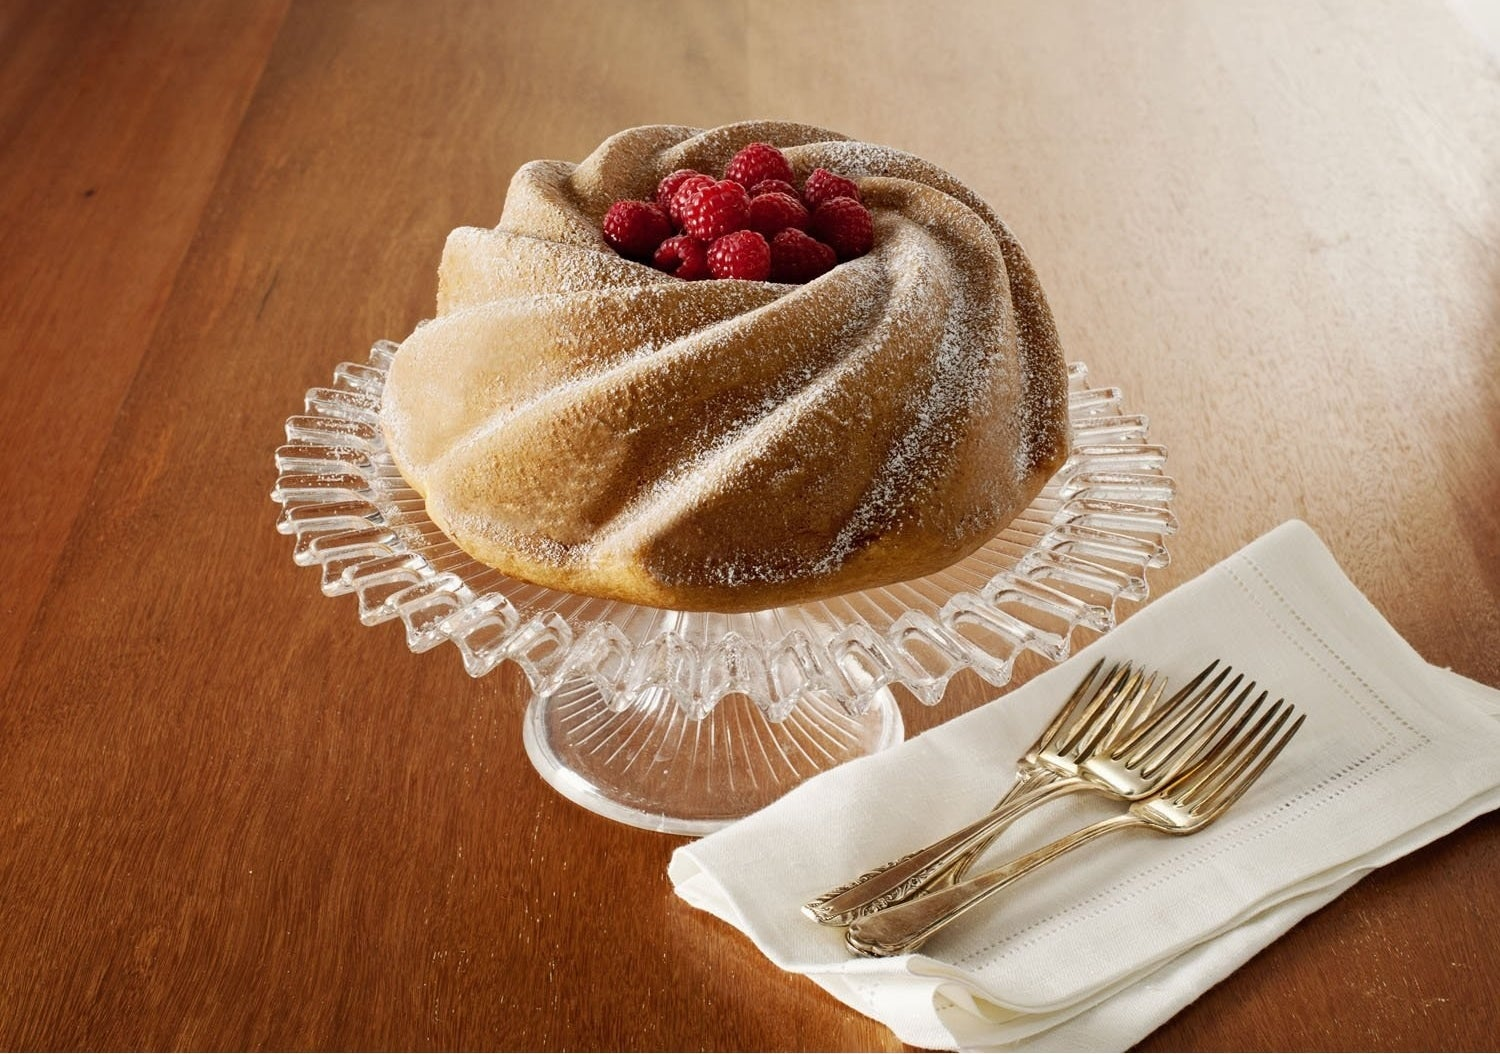 A bundt pan to simply pour your batter into, bake, take out, and voila — you get a beauty like the one below.